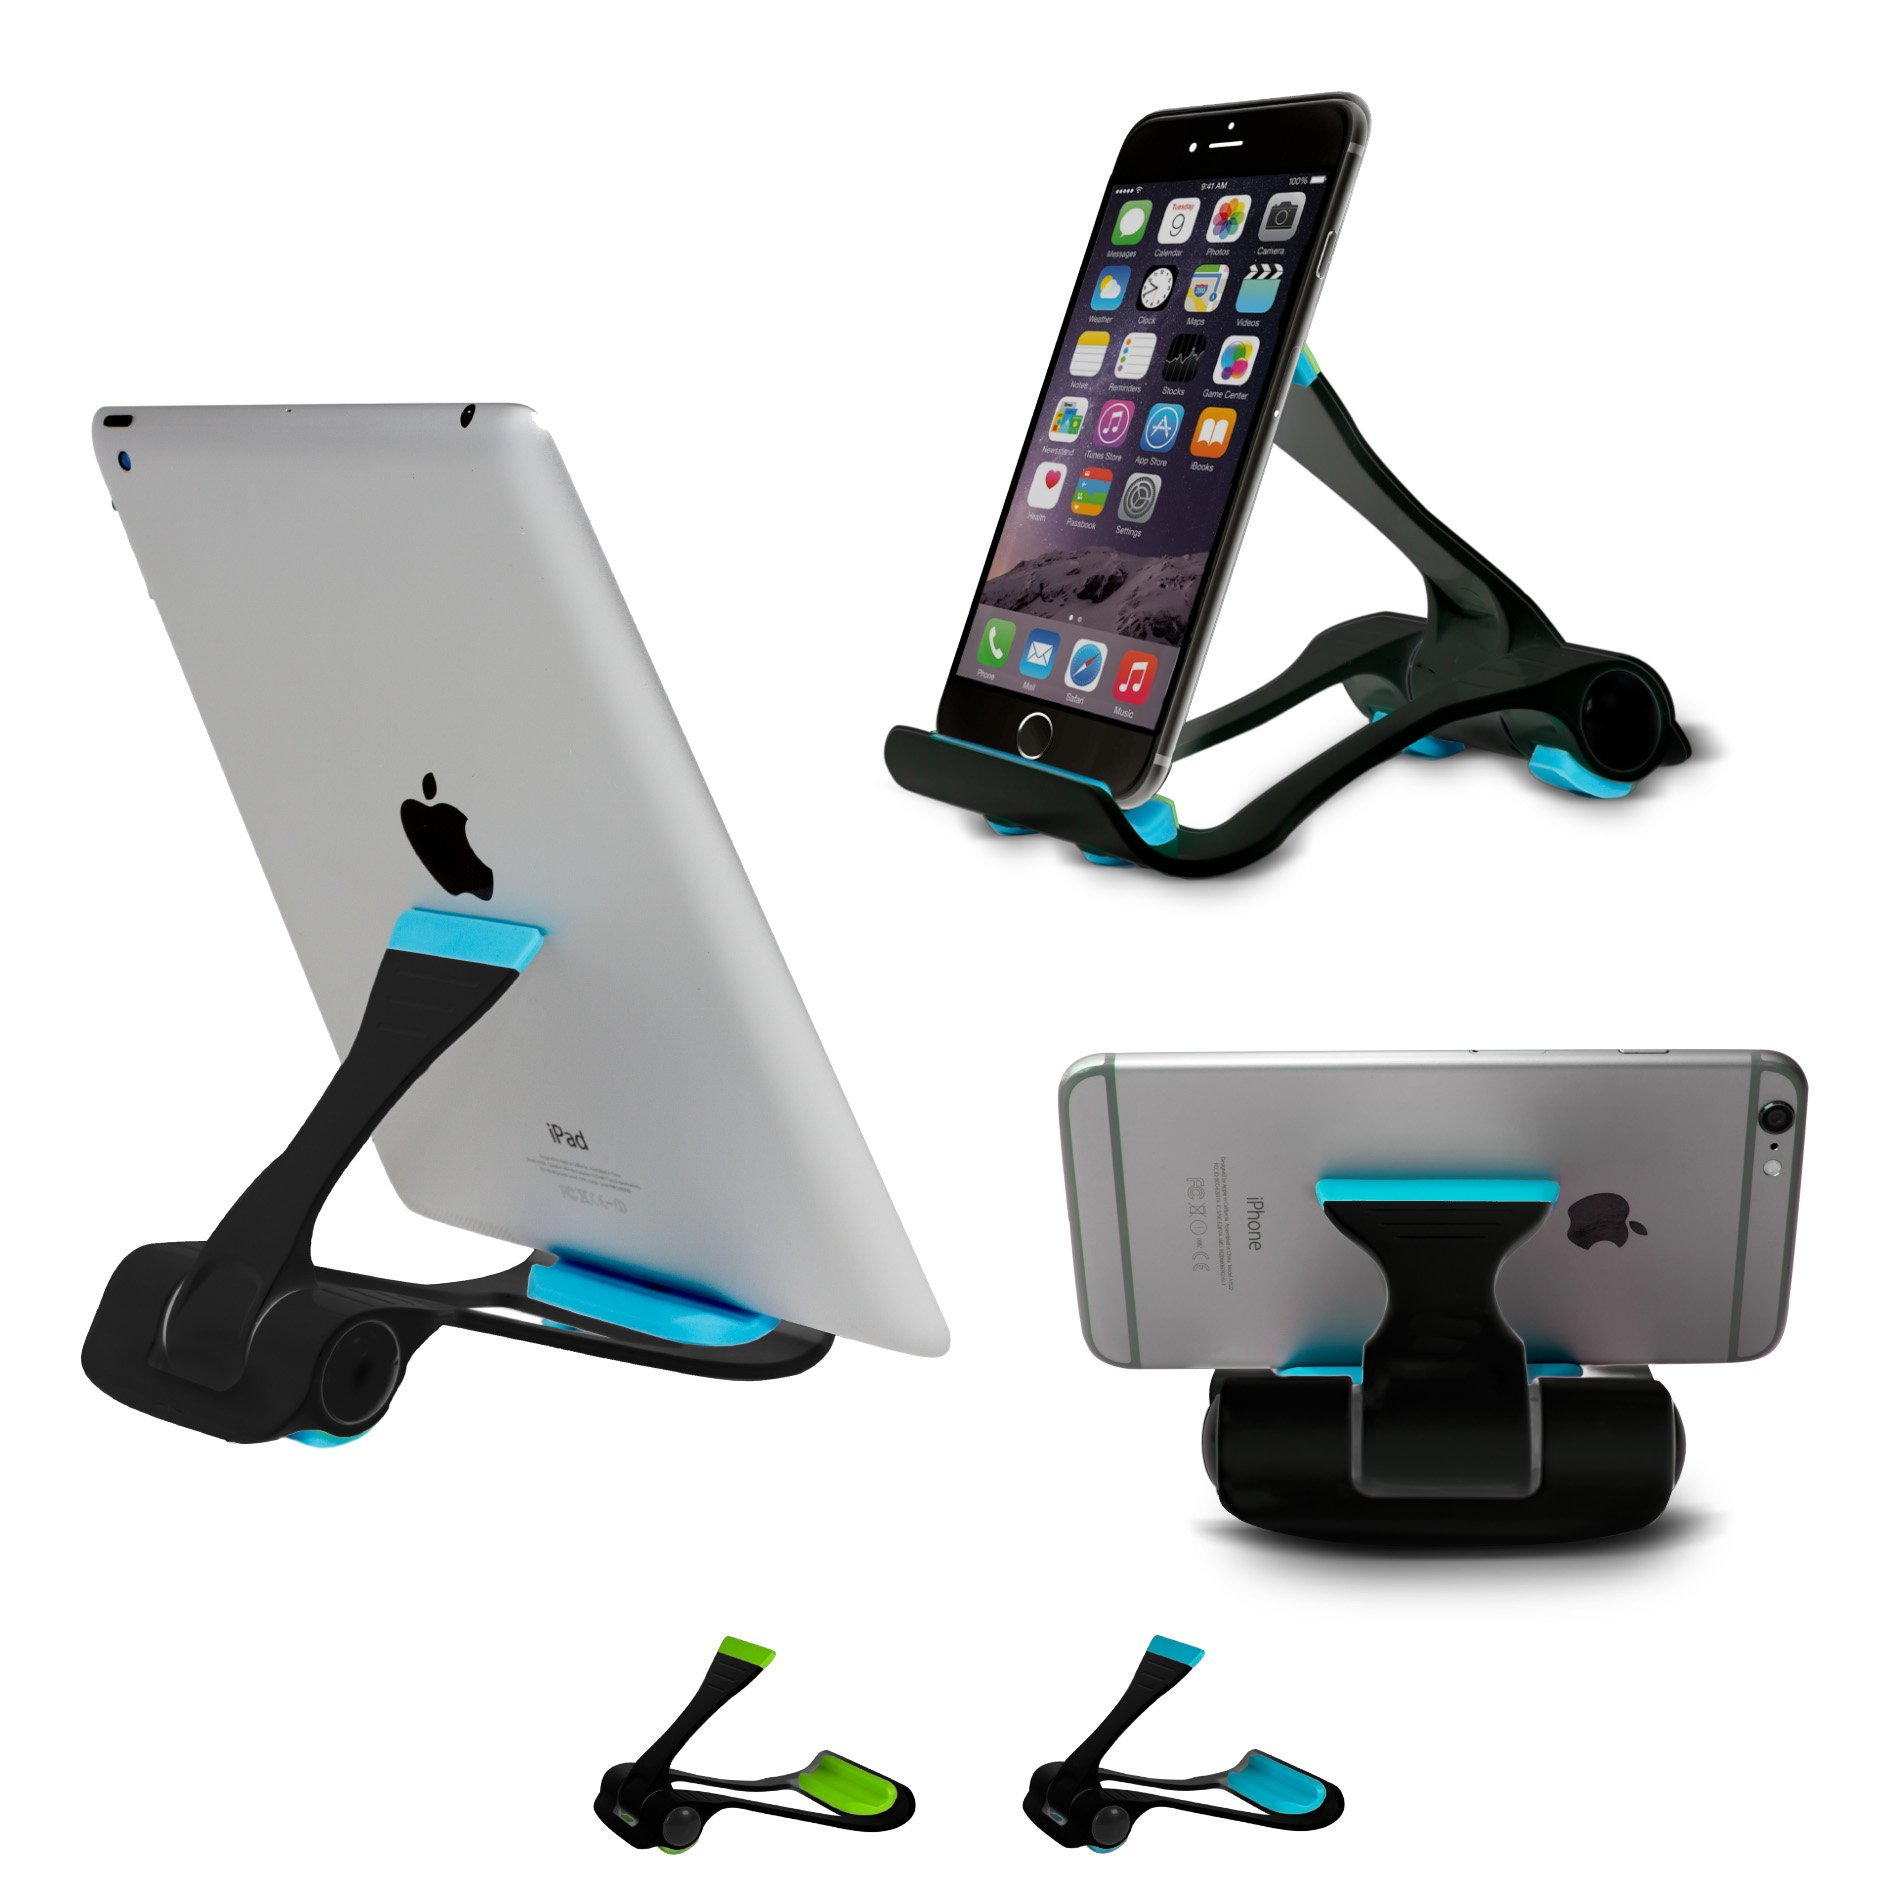 Tablet and Cell Phone Stand, Holder, Mount for Apple iPad, iPhone, Samsung Galaxy Tab, Kindle, Fit to Any Devices from 4''-12'' by SIME-ON - (Black-Blue)